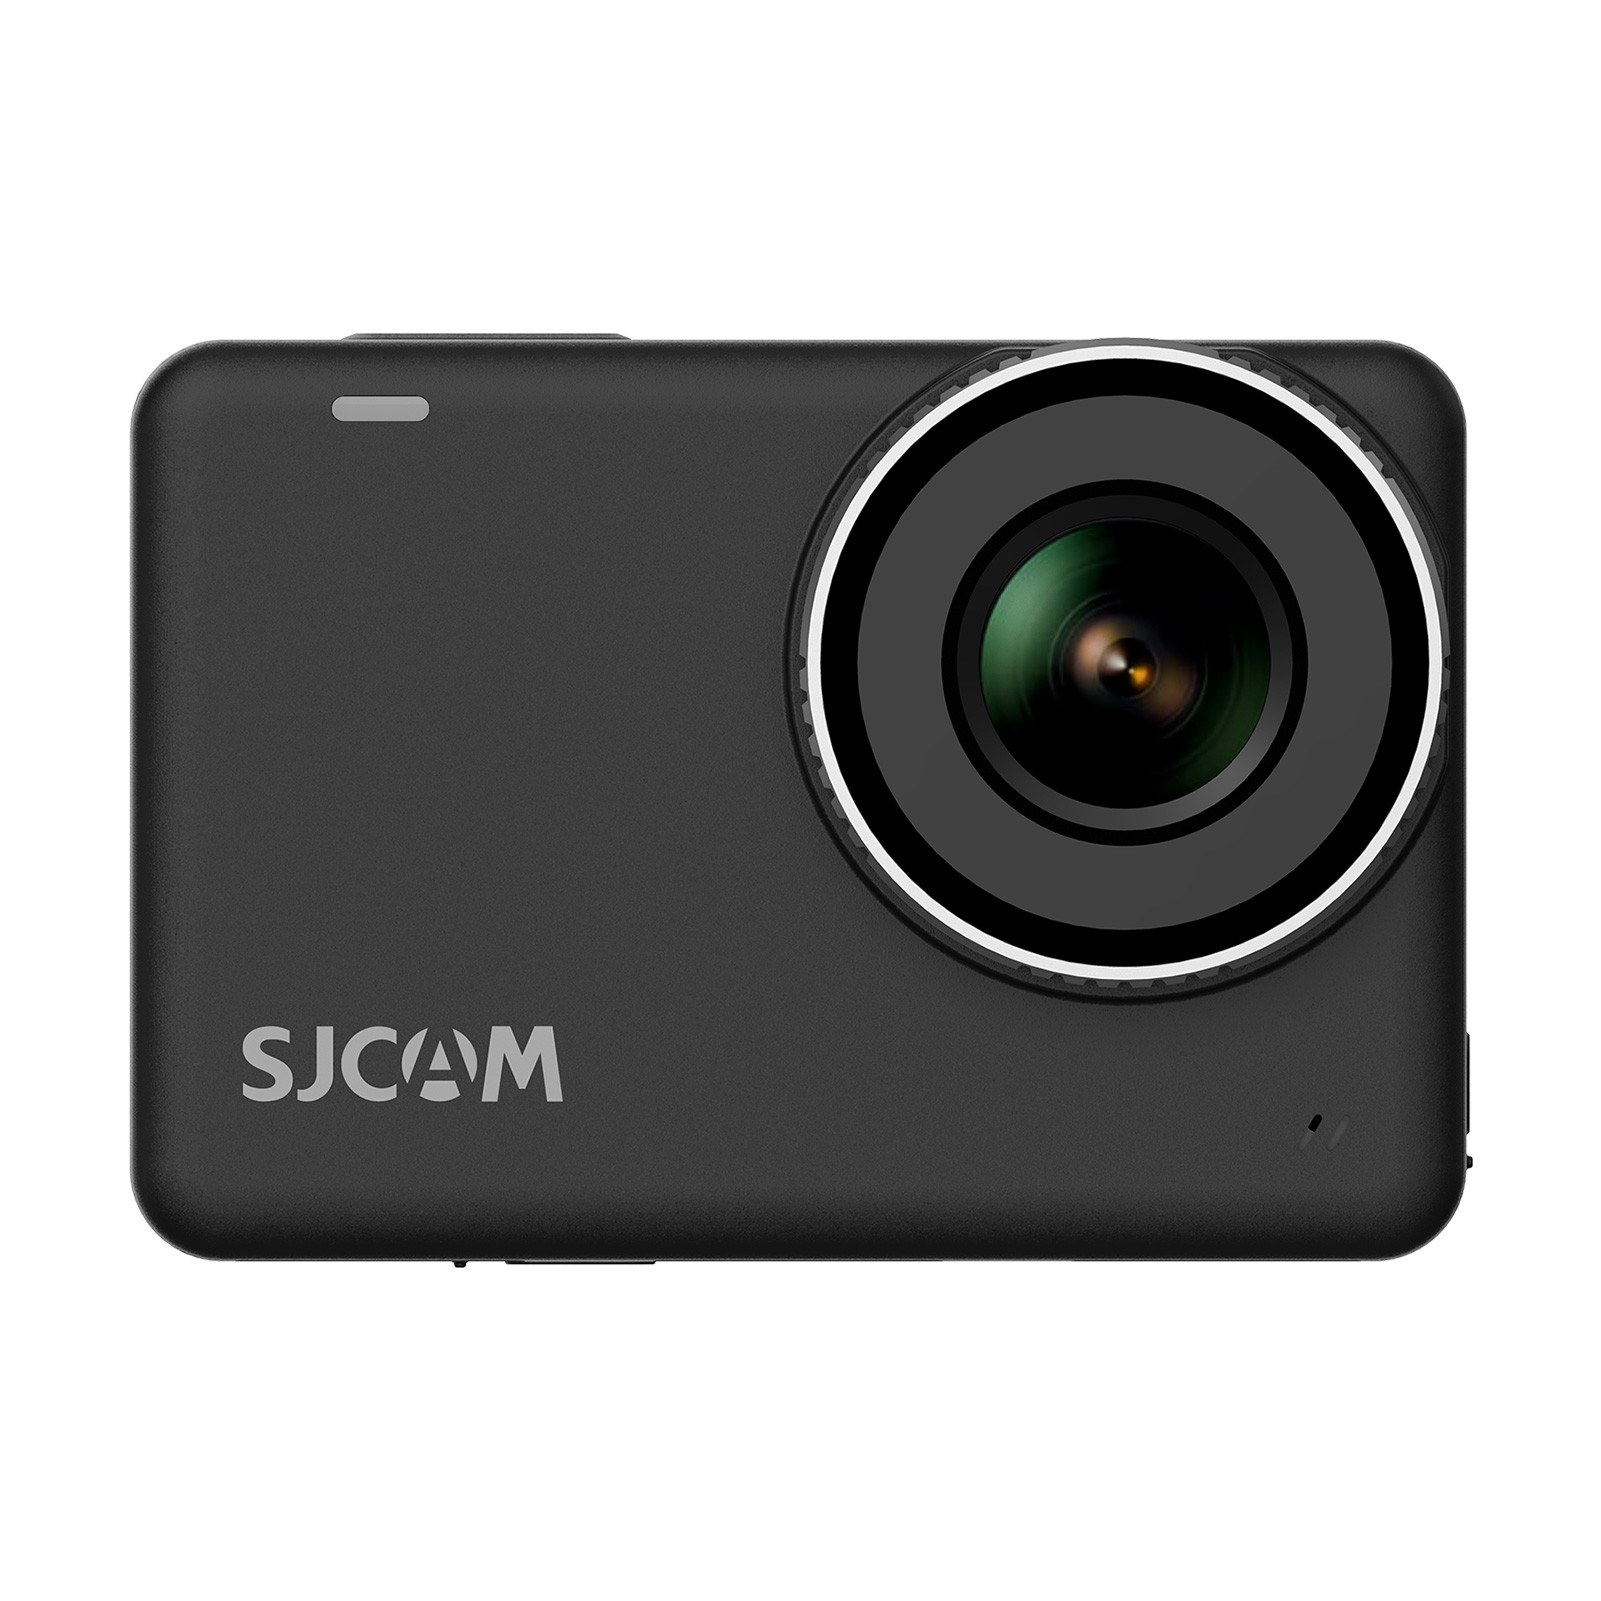 Tomtop - 56% OFF SJCAM SJ10 PRO 4K/60FPS 12MP High-Definition Action Camera, Free Shipping $209.99